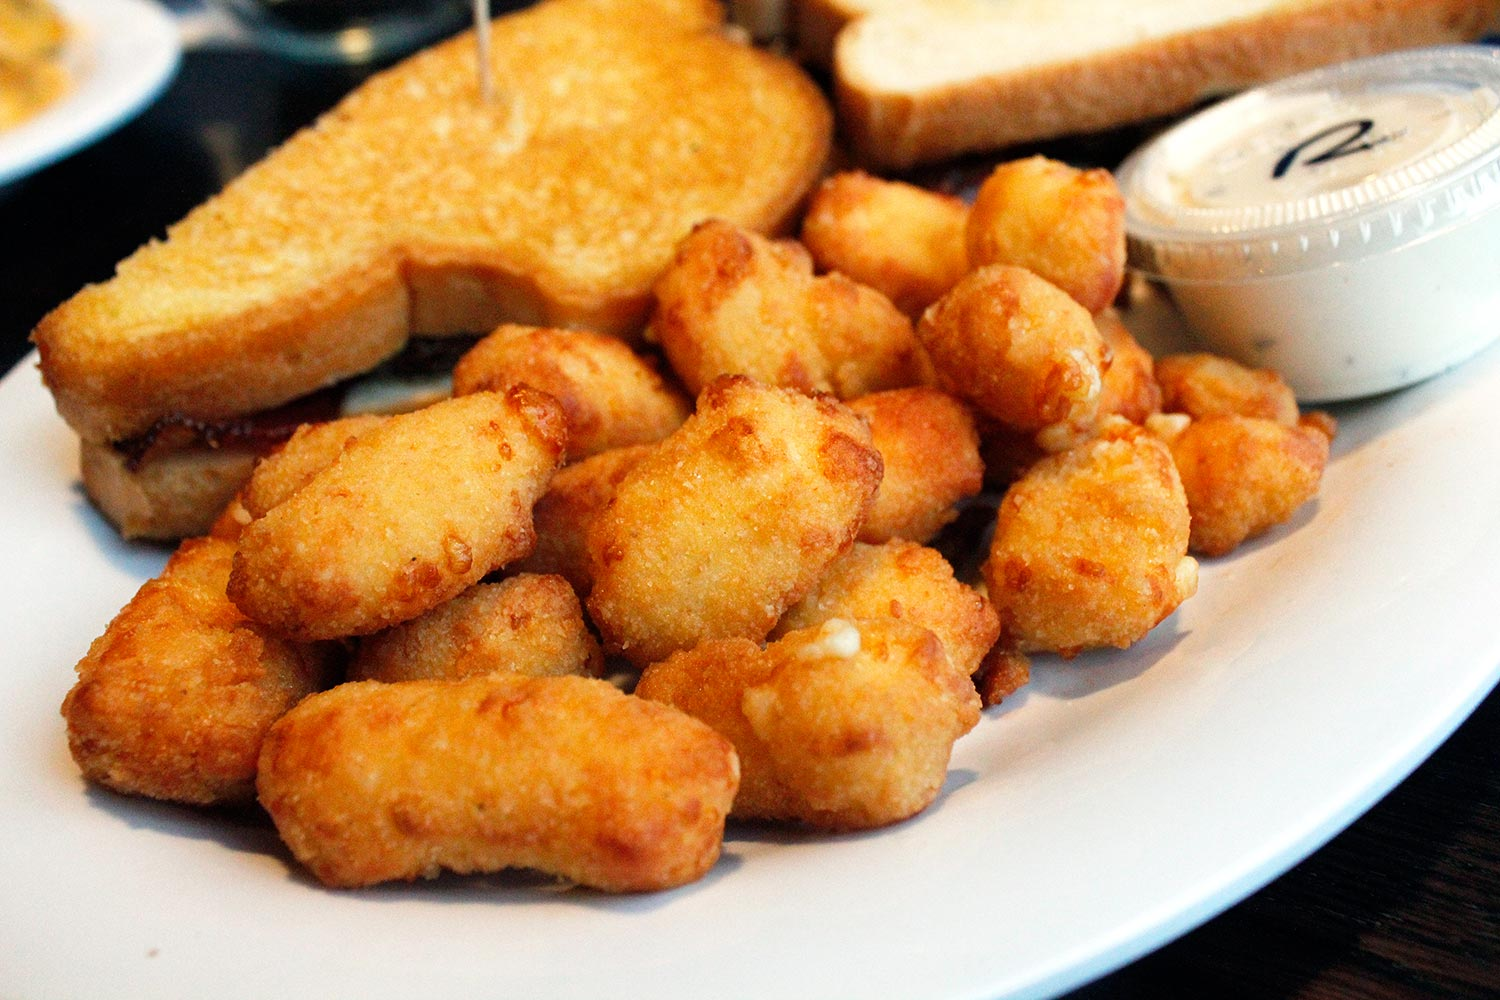 LJ's Sports Tavern's cheese curds